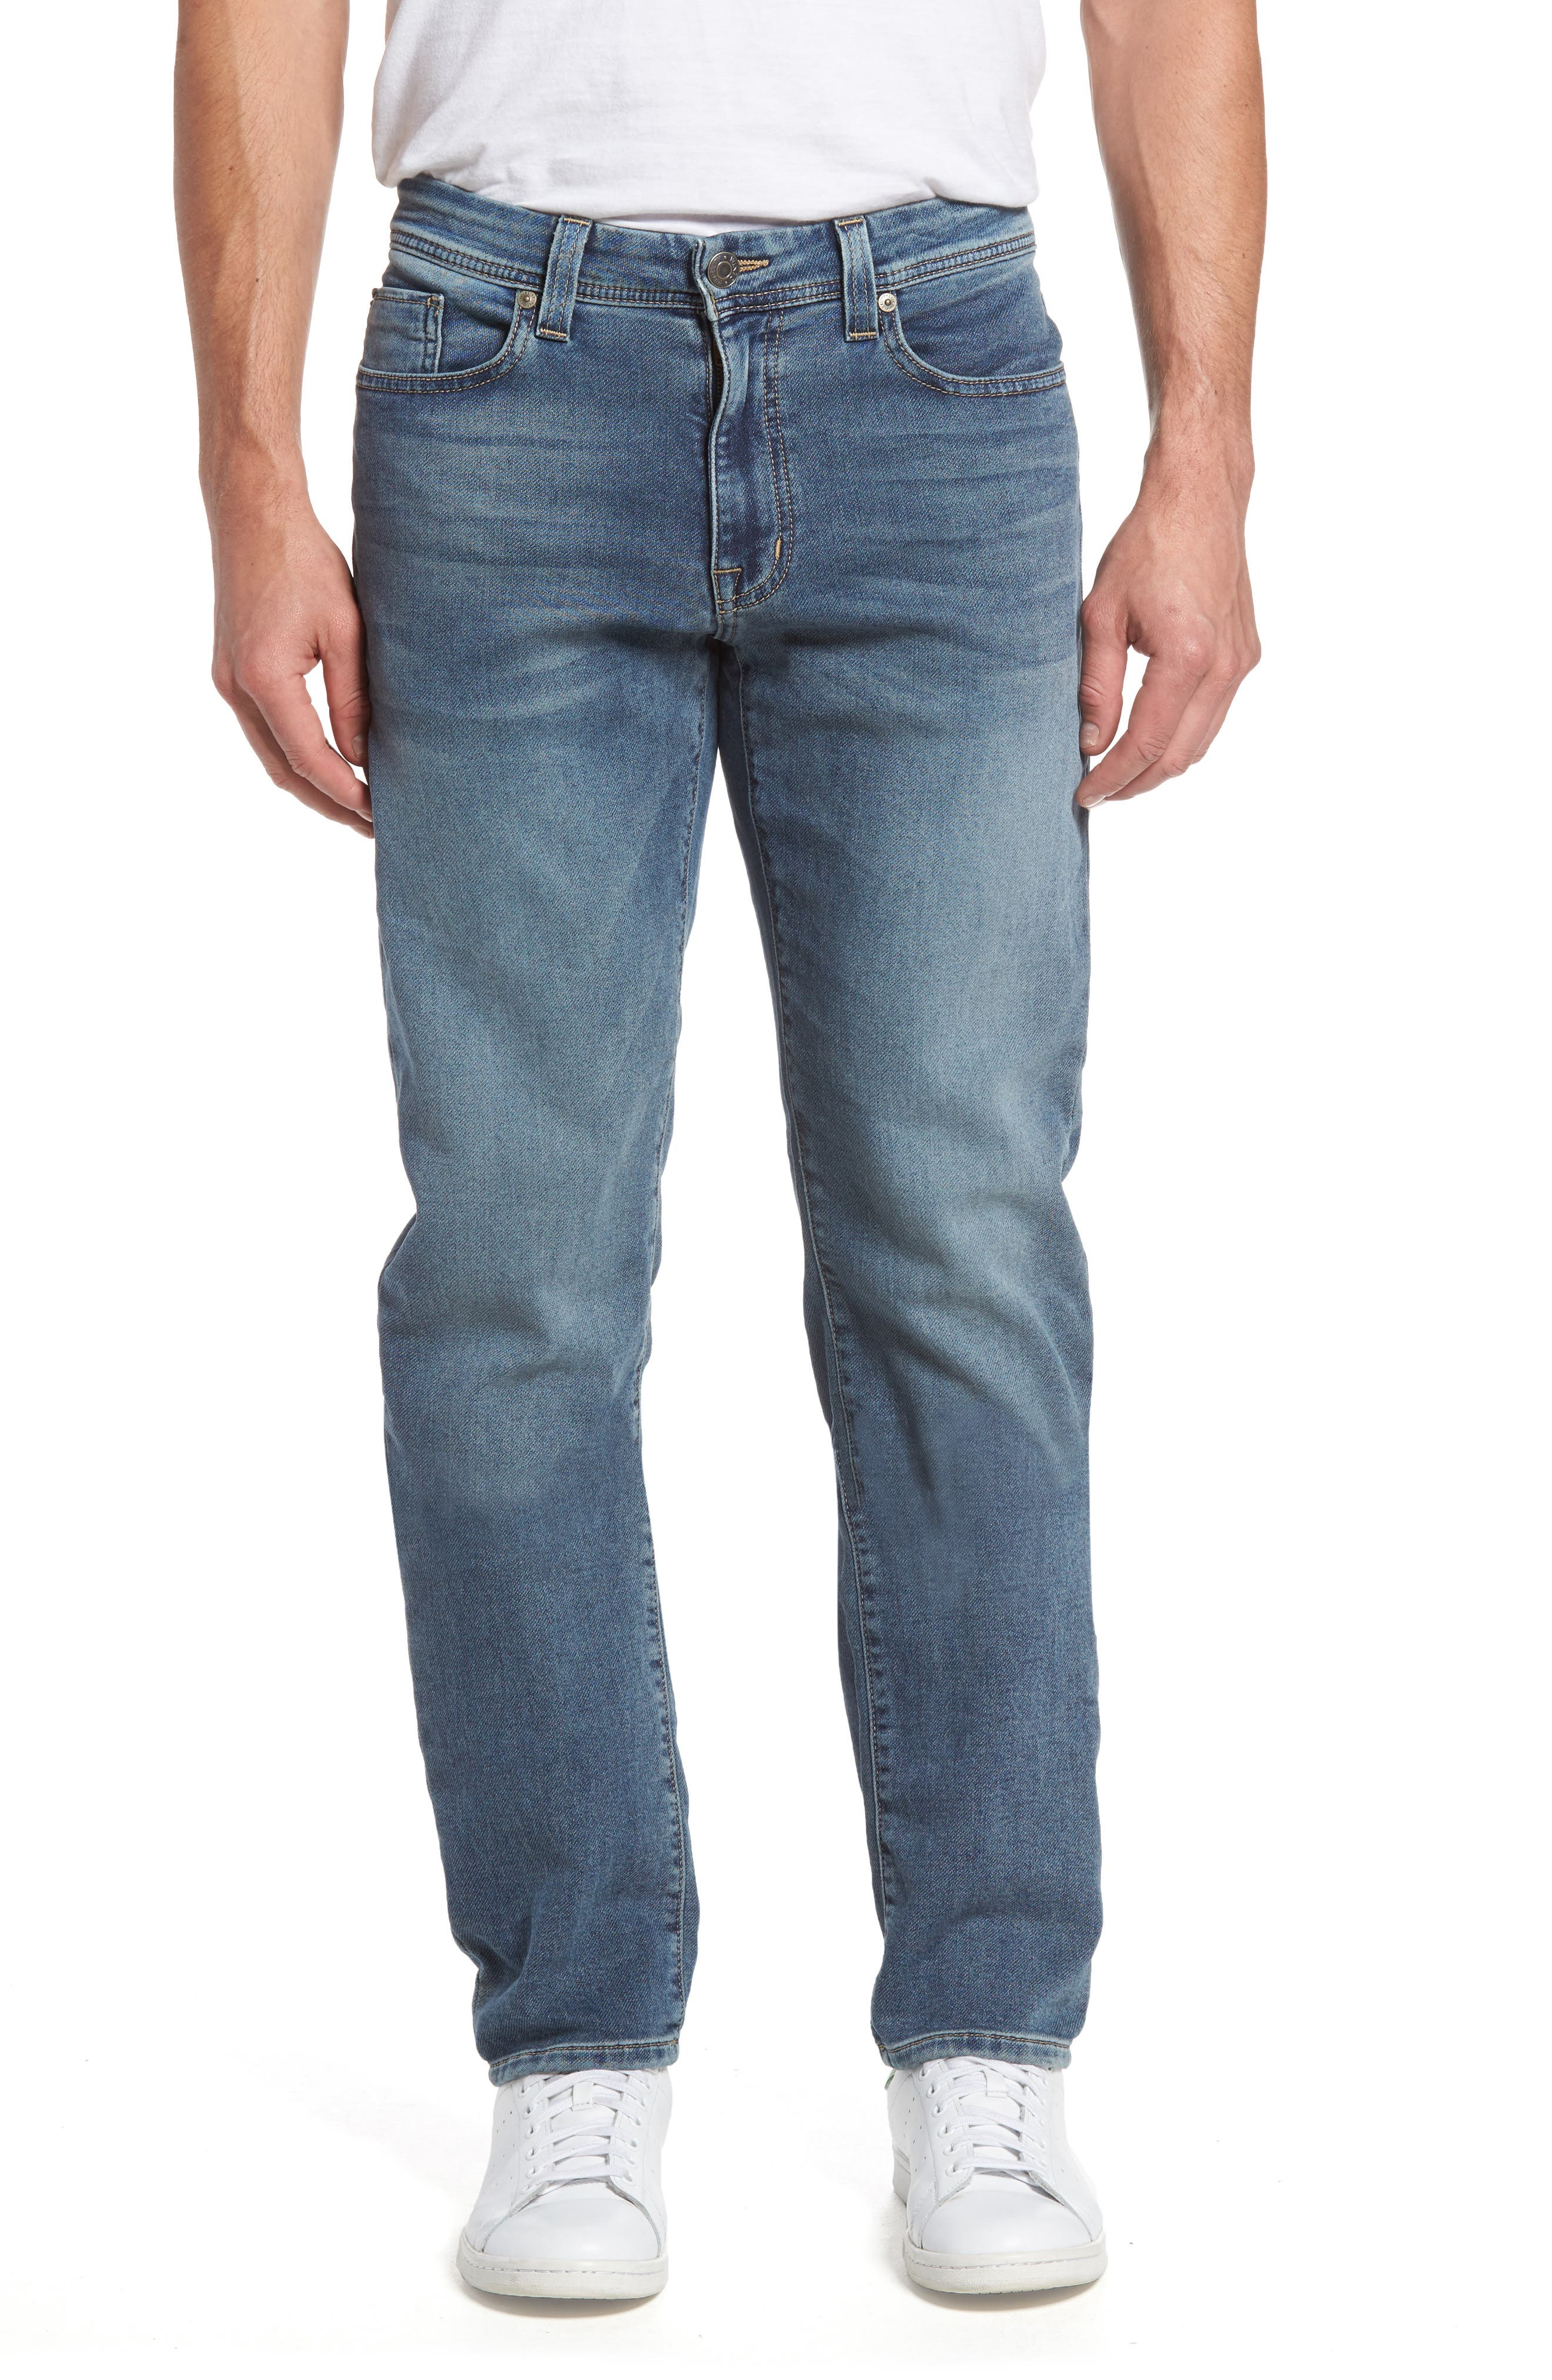 Jimmy Slim Straight Leg Jeans,                             Main thumbnail 1, color,                             Oxy Vox Vintage